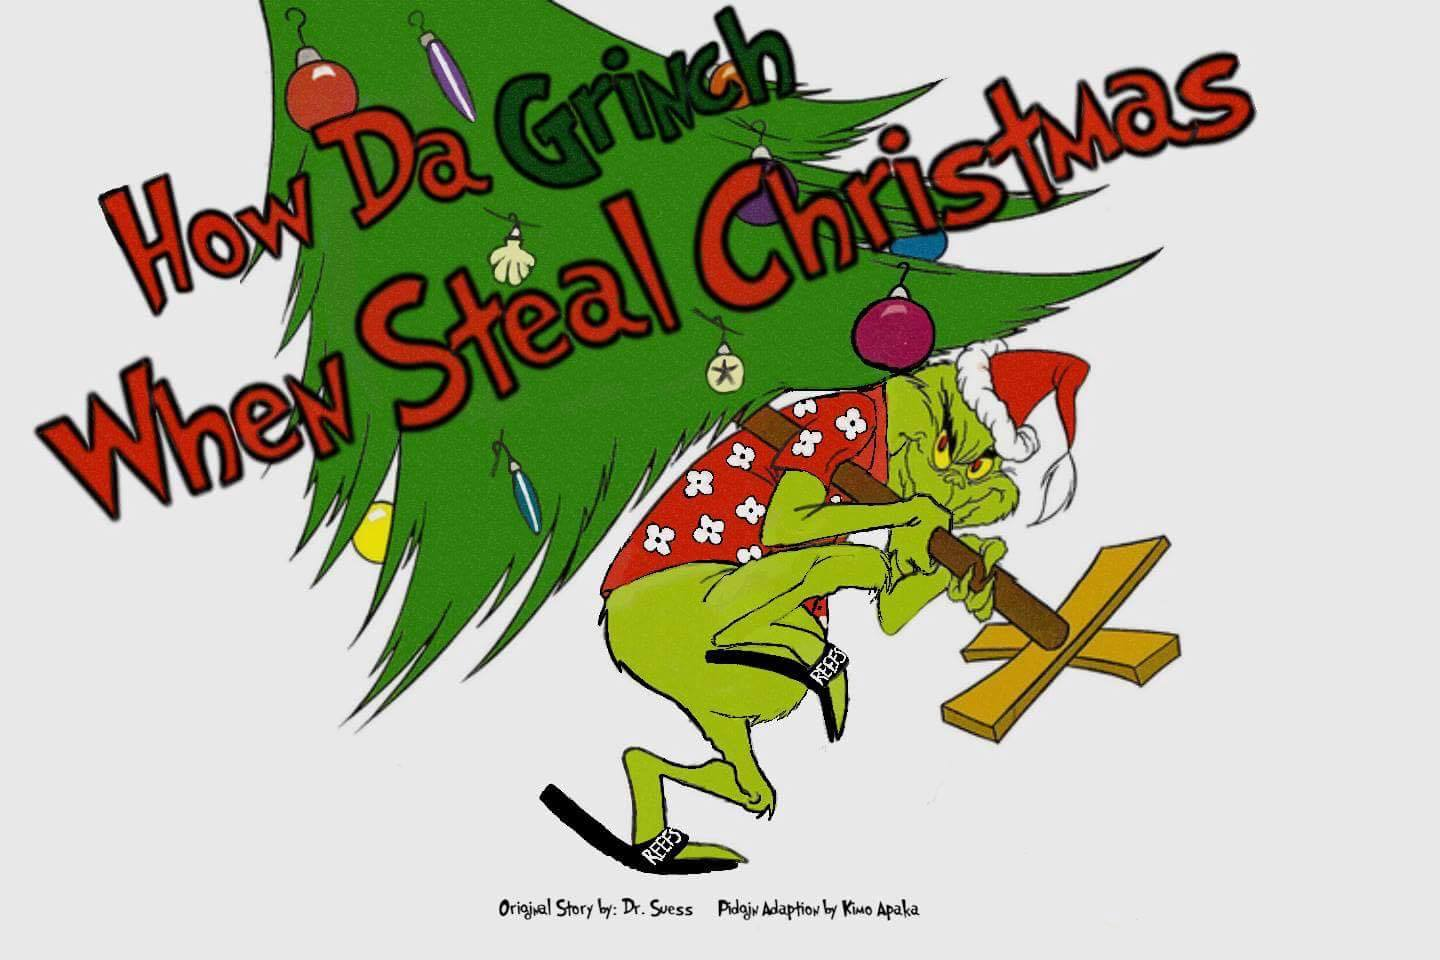 how-da-grinch-when-steal-christmas